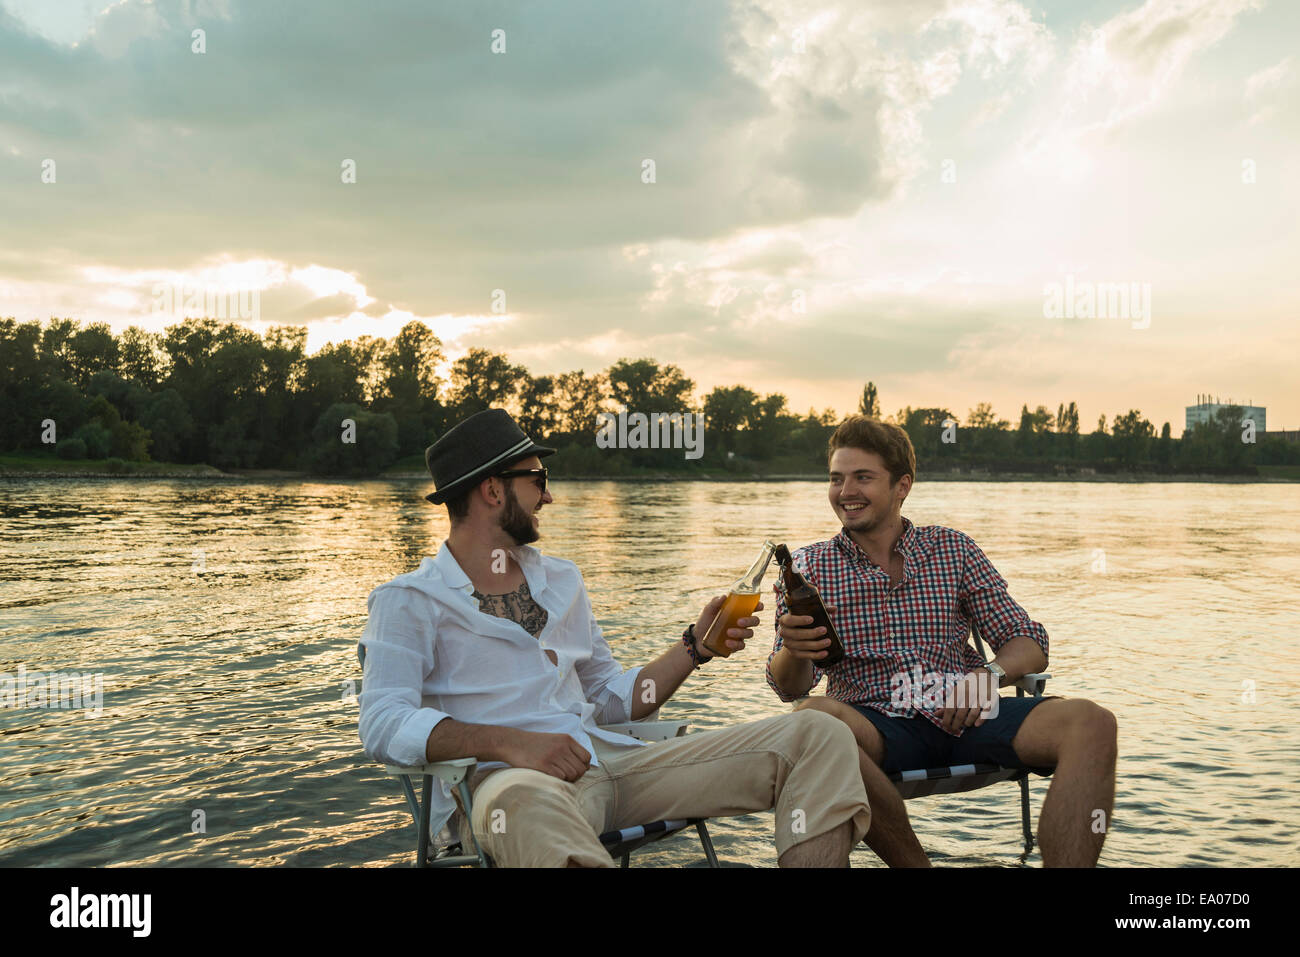 Young men toasting with beer bottles by lake - Stock Image